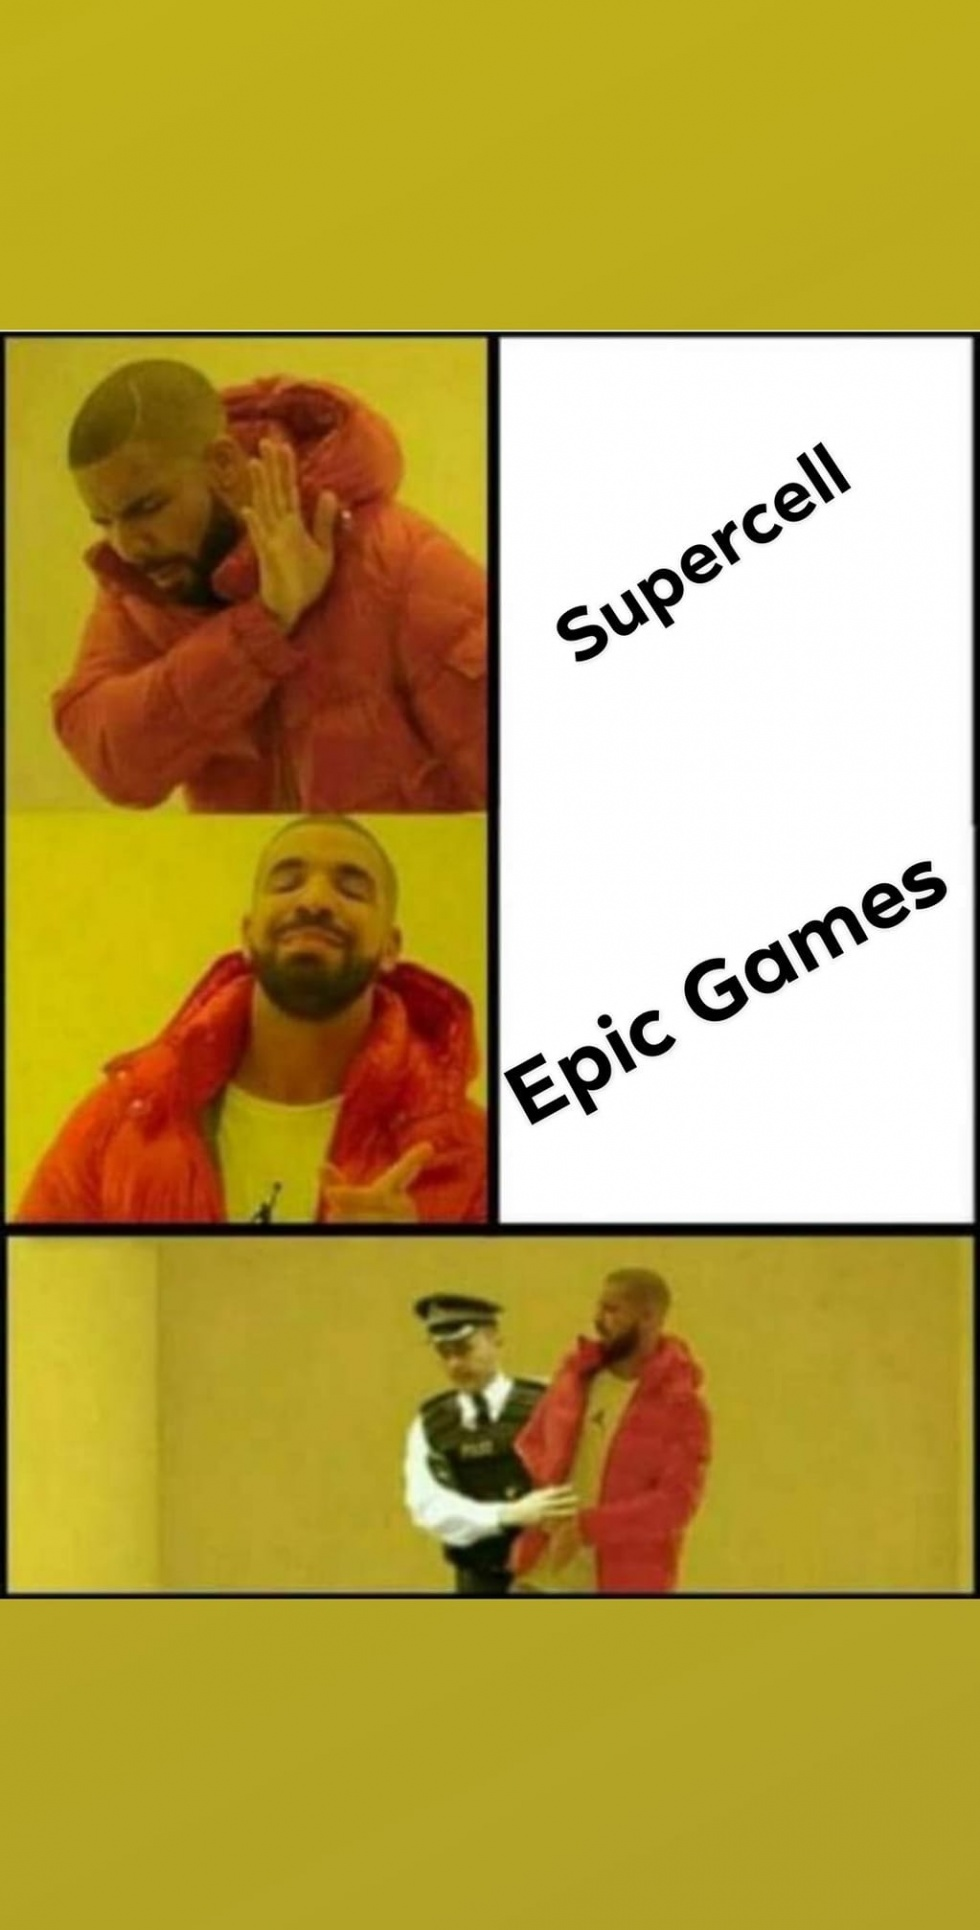 Supercell Epic Games